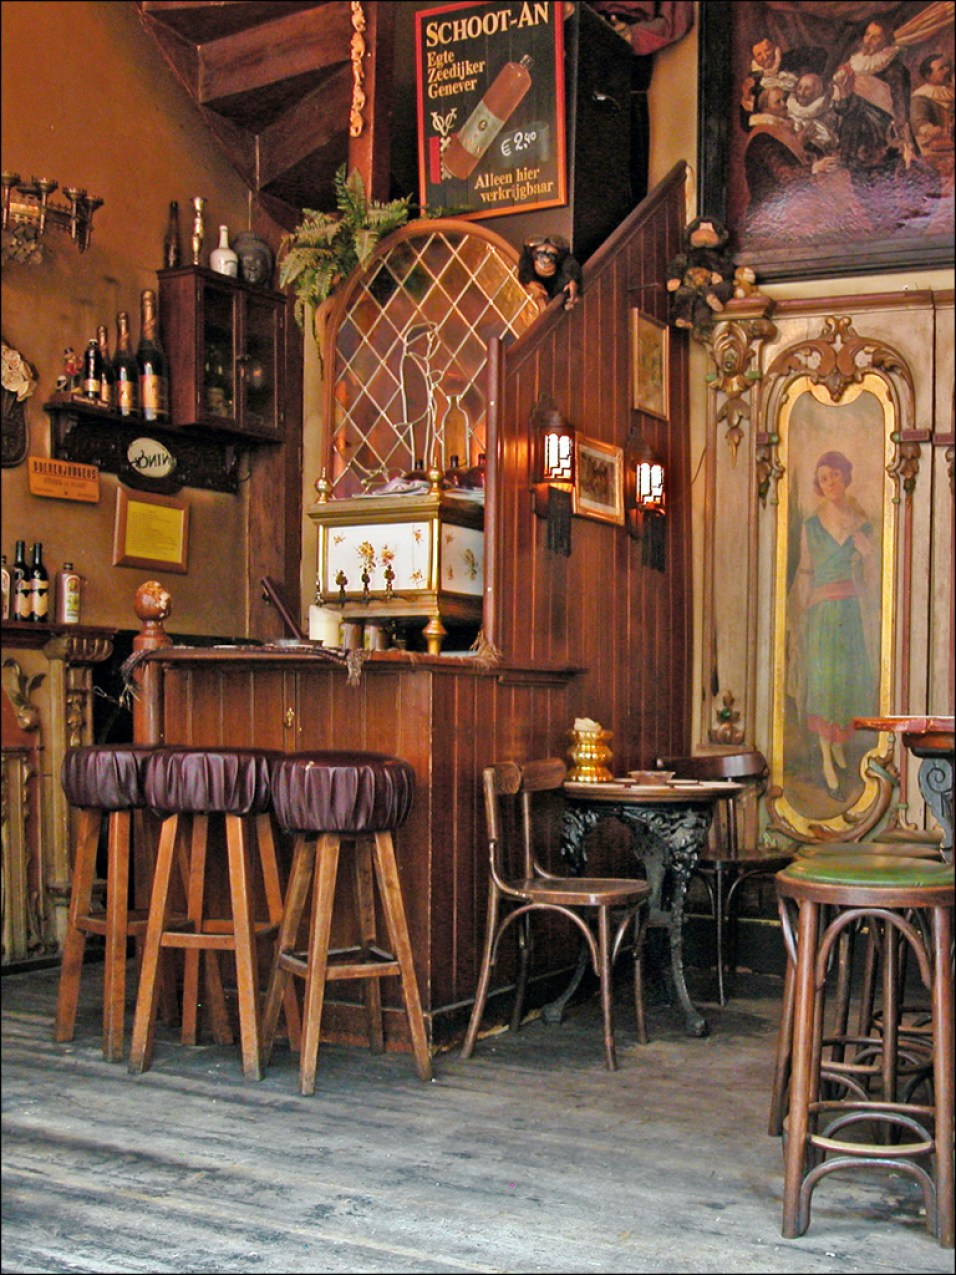 One of Amsterdam's oldest bars, In 't Aepjen is a charming place with a good story to tell.